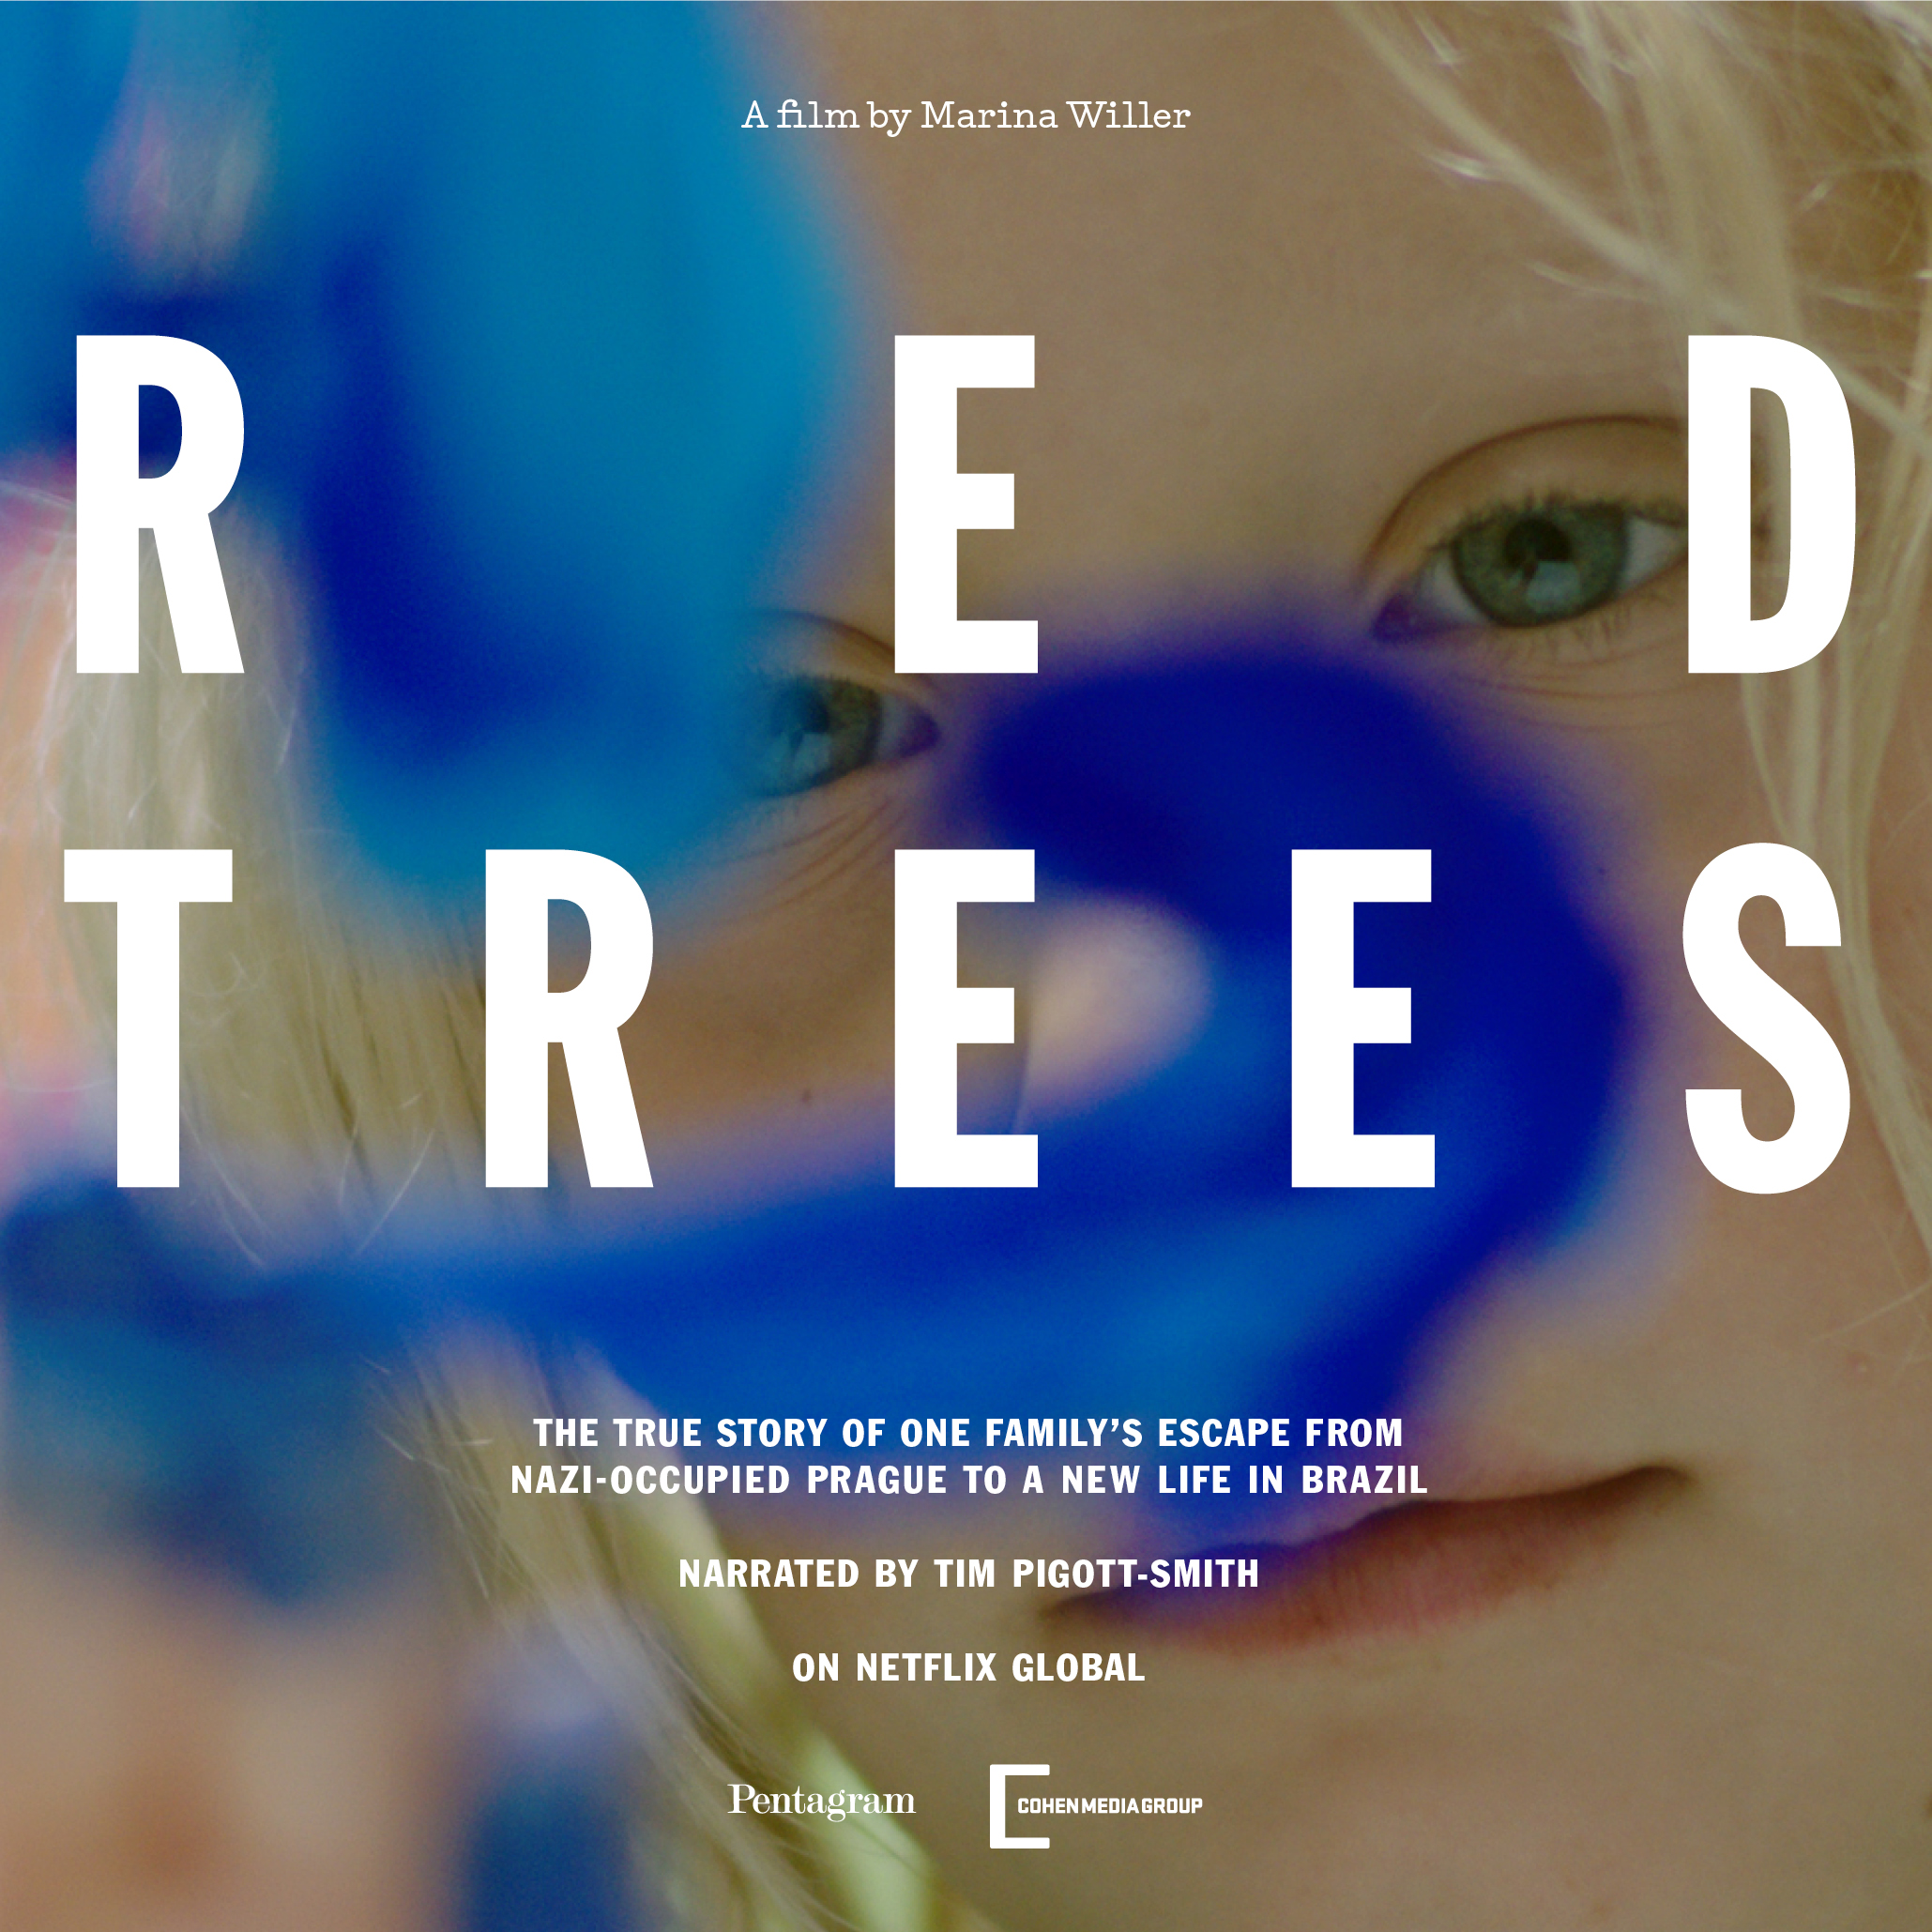 Red Trees film by Marina Willer